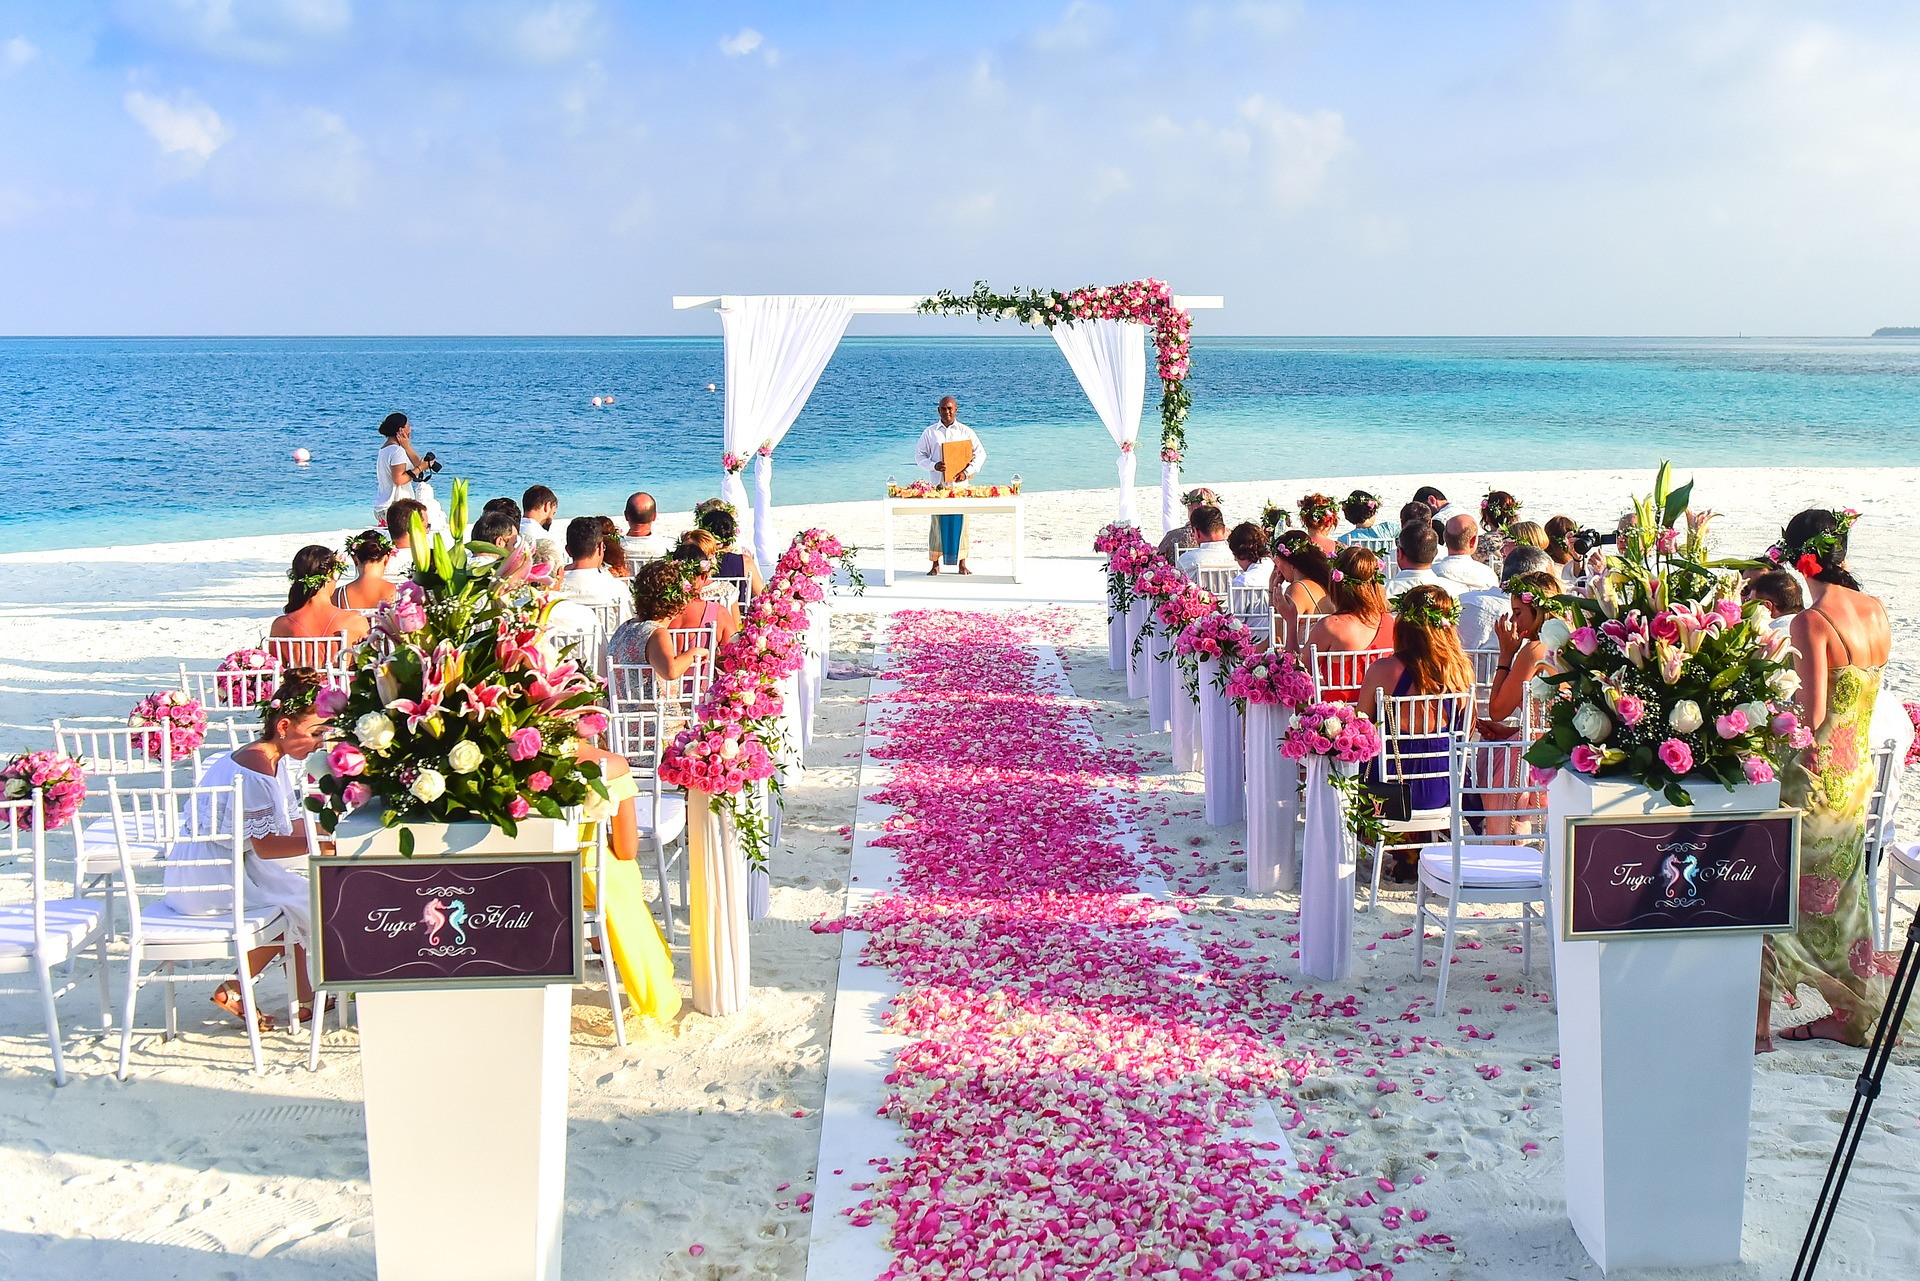 Illustrious weddings choosing a theme for your wedding of all the wedding themes available summer just seems to be the most common this is because summer favours outdoor events there is higher chance sun and junglespirit Images